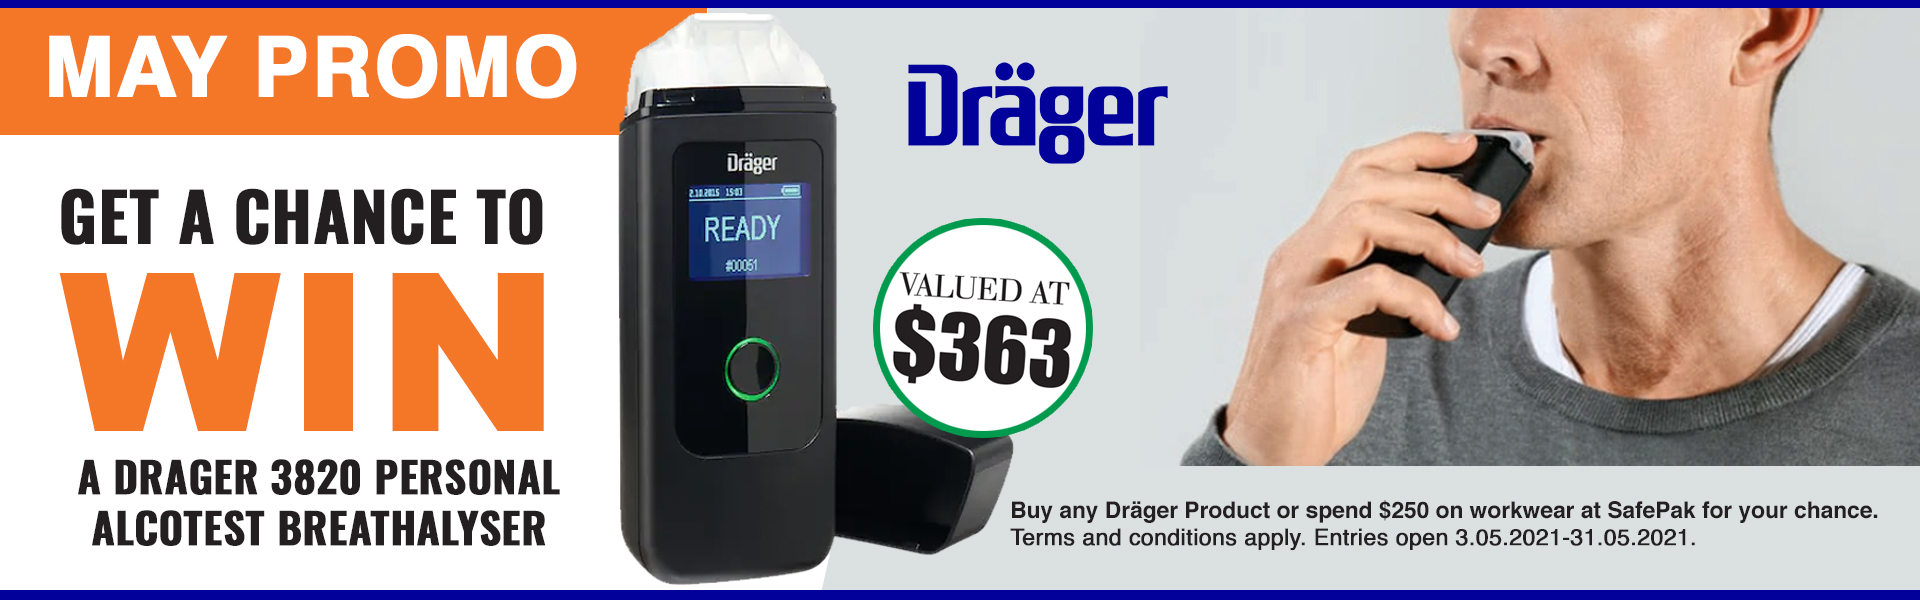 Drager Promo